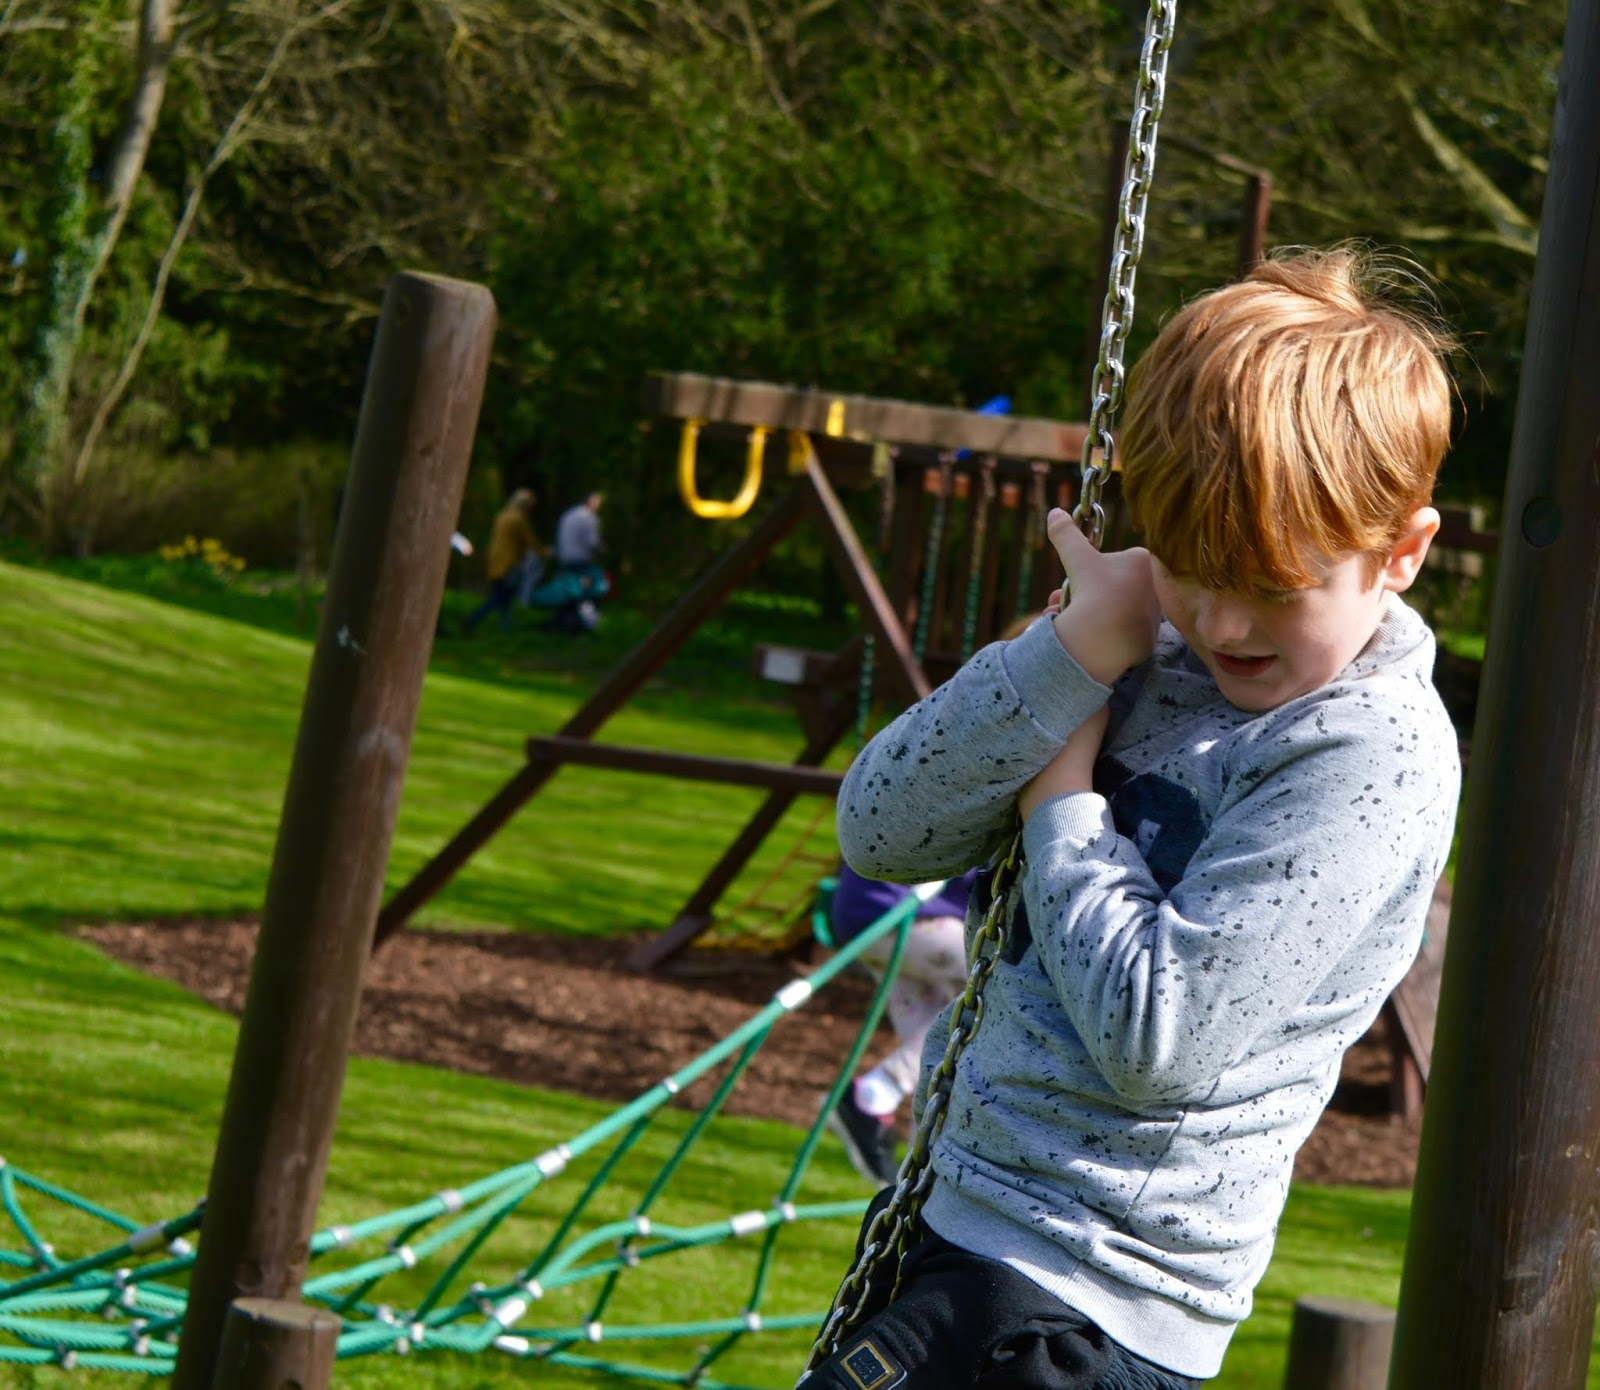 Sunday Lunch, Playgrounds & Birds of Prey at Walworth Castle, Darlington  - adventure playground